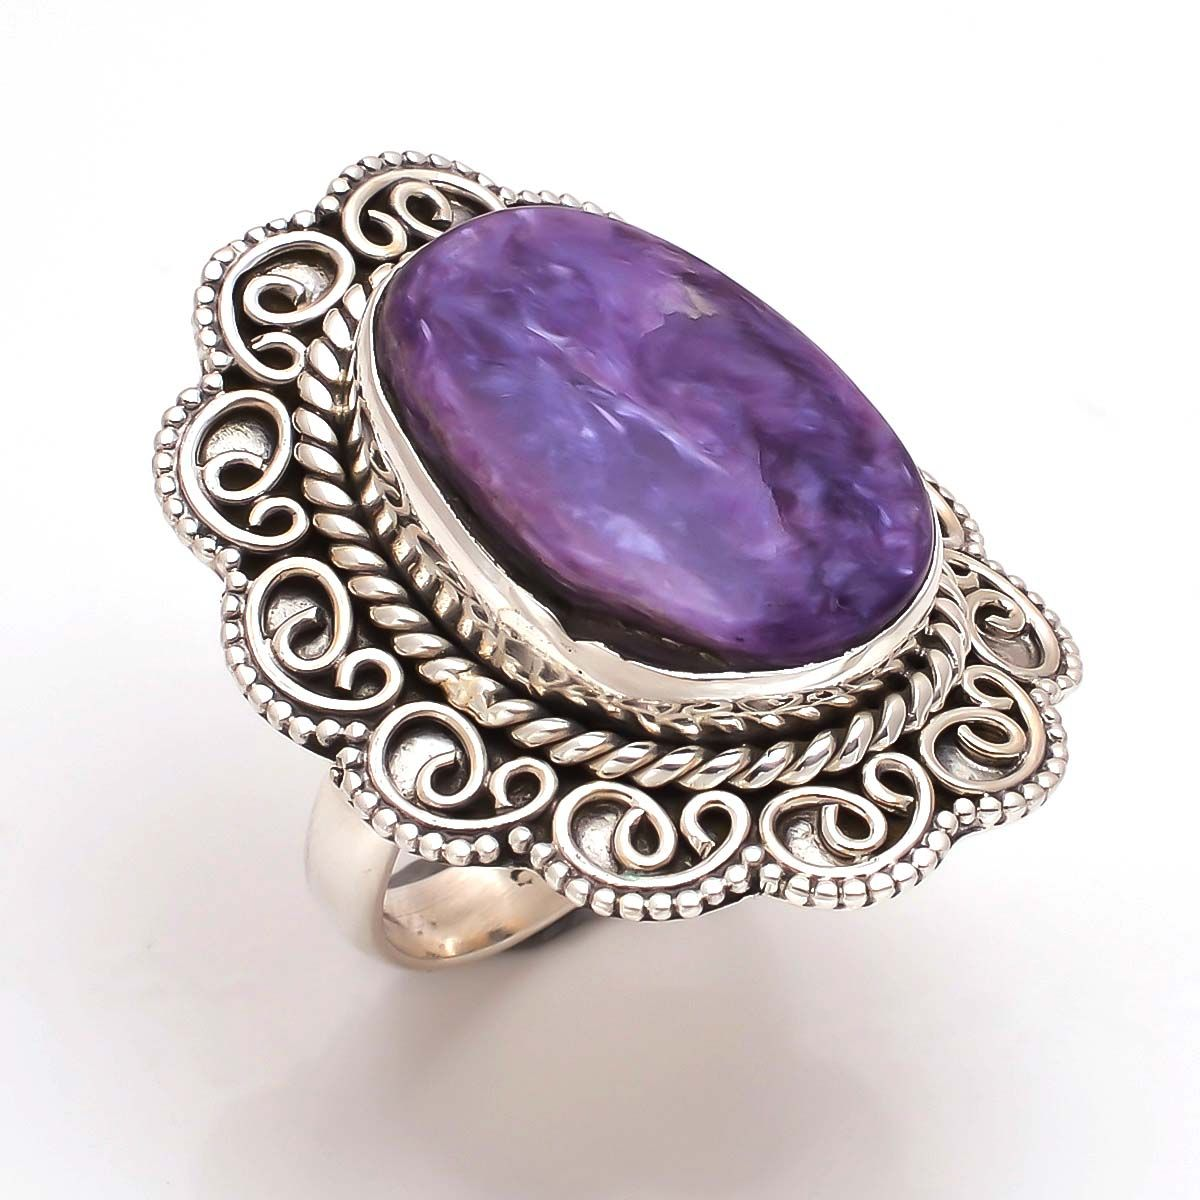 Charoite Gemstone 925 Sterling Silver Ring Size 8